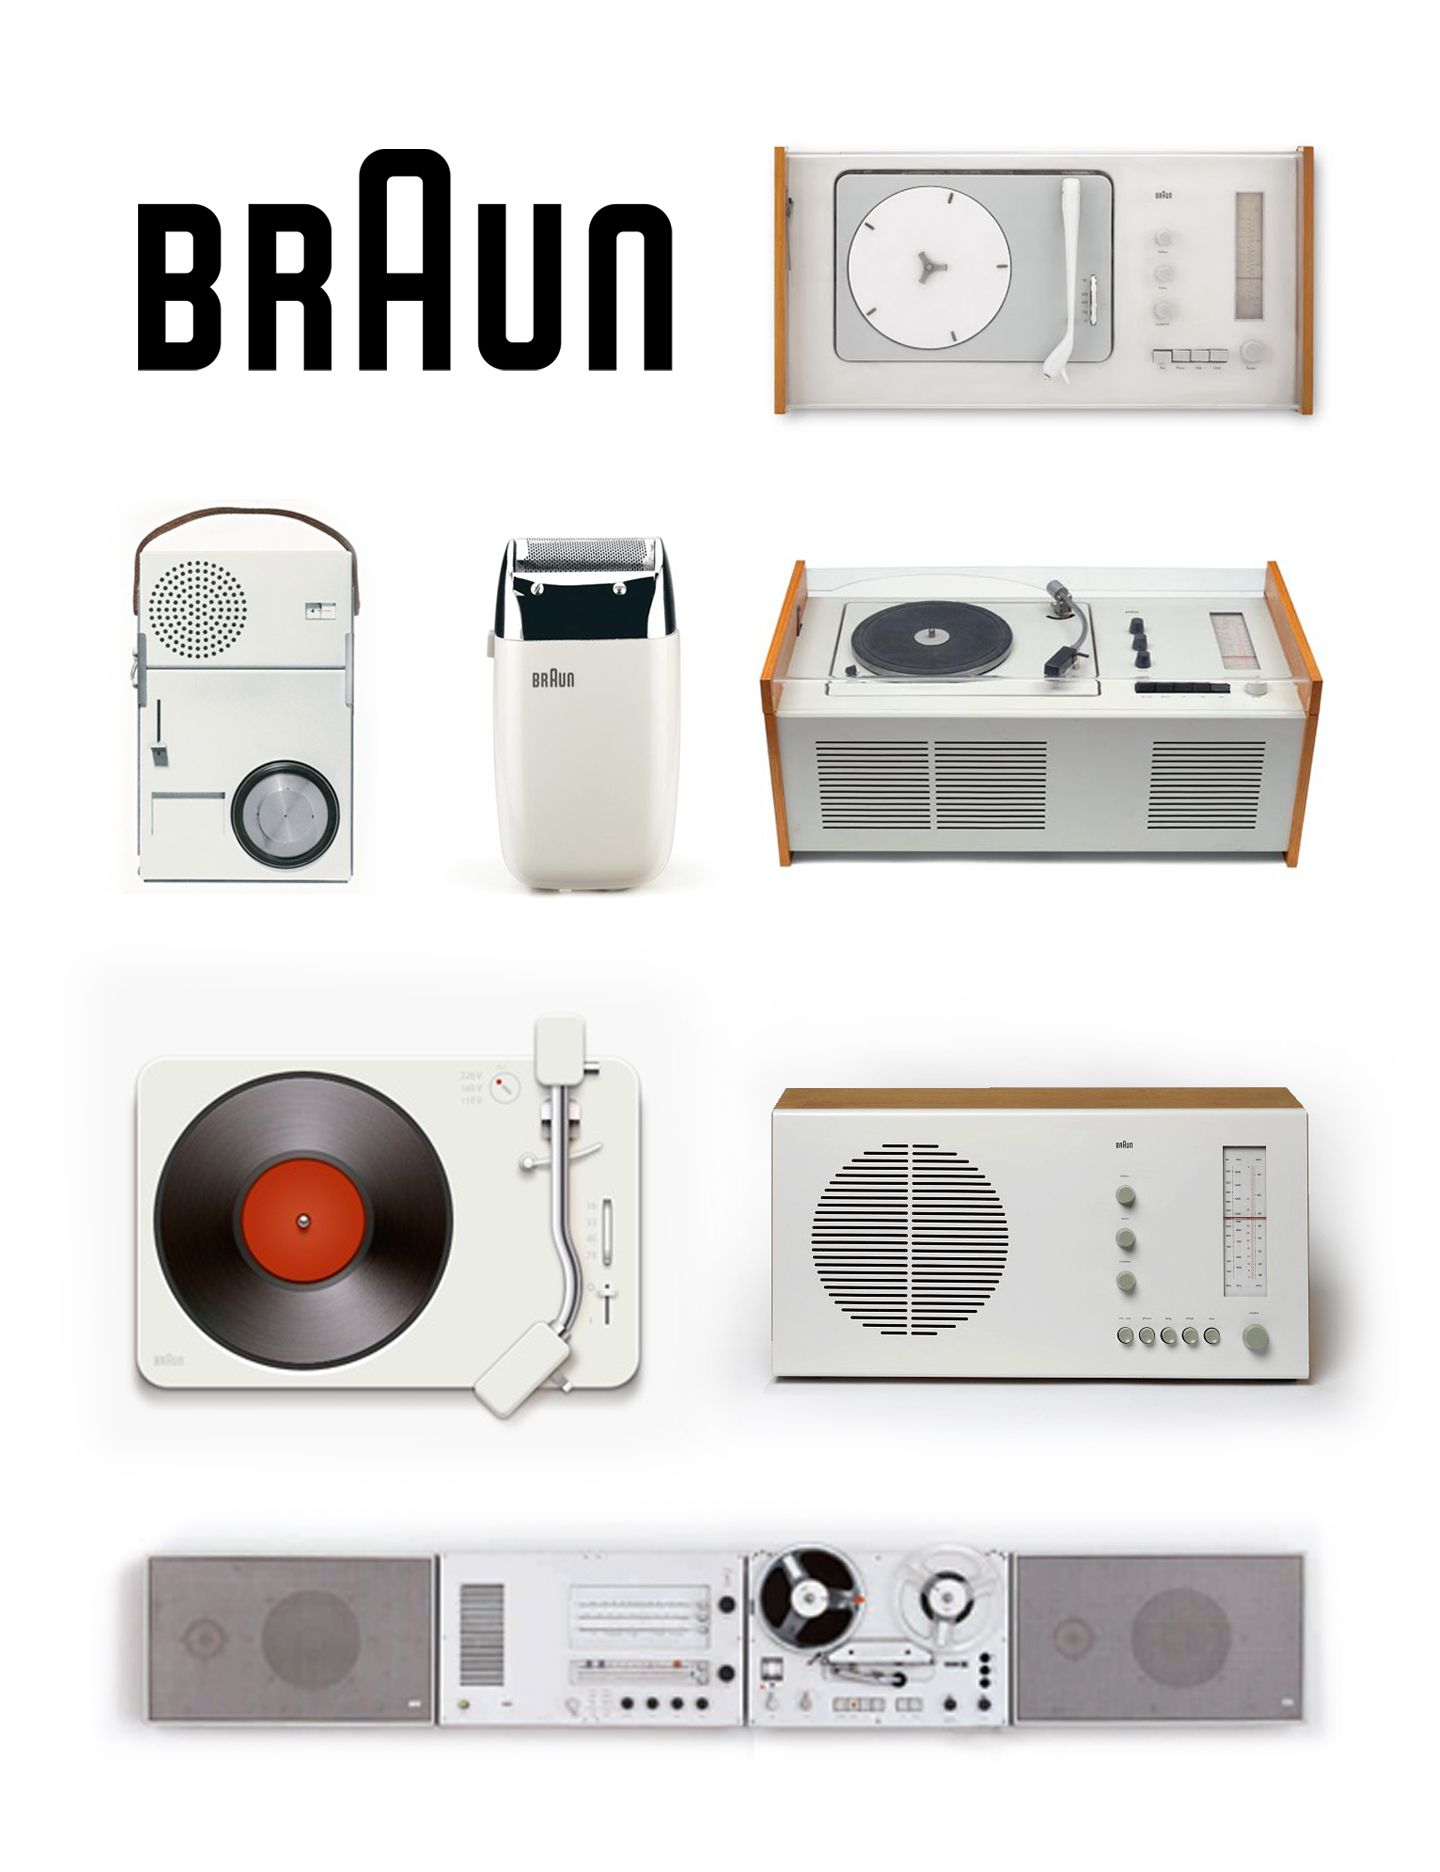 dieter rams some of his braun masterpieces industrial design pinterest vinyles objet. Black Bedroom Furniture Sets. Home Design Ideas